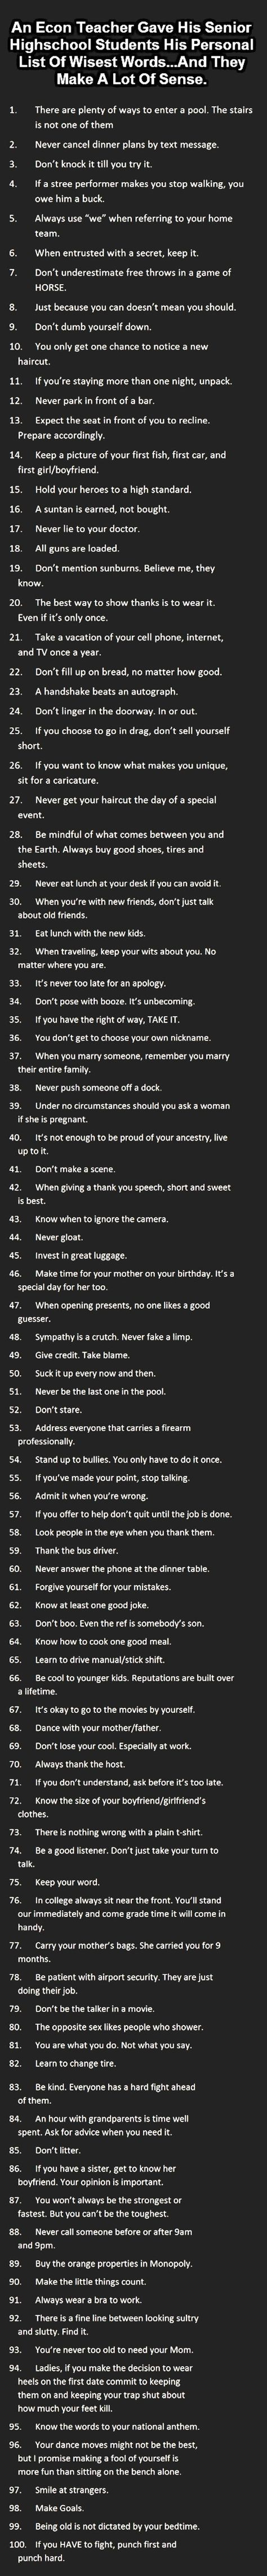 Solid advice - I love this. (Hate the typos, though.)